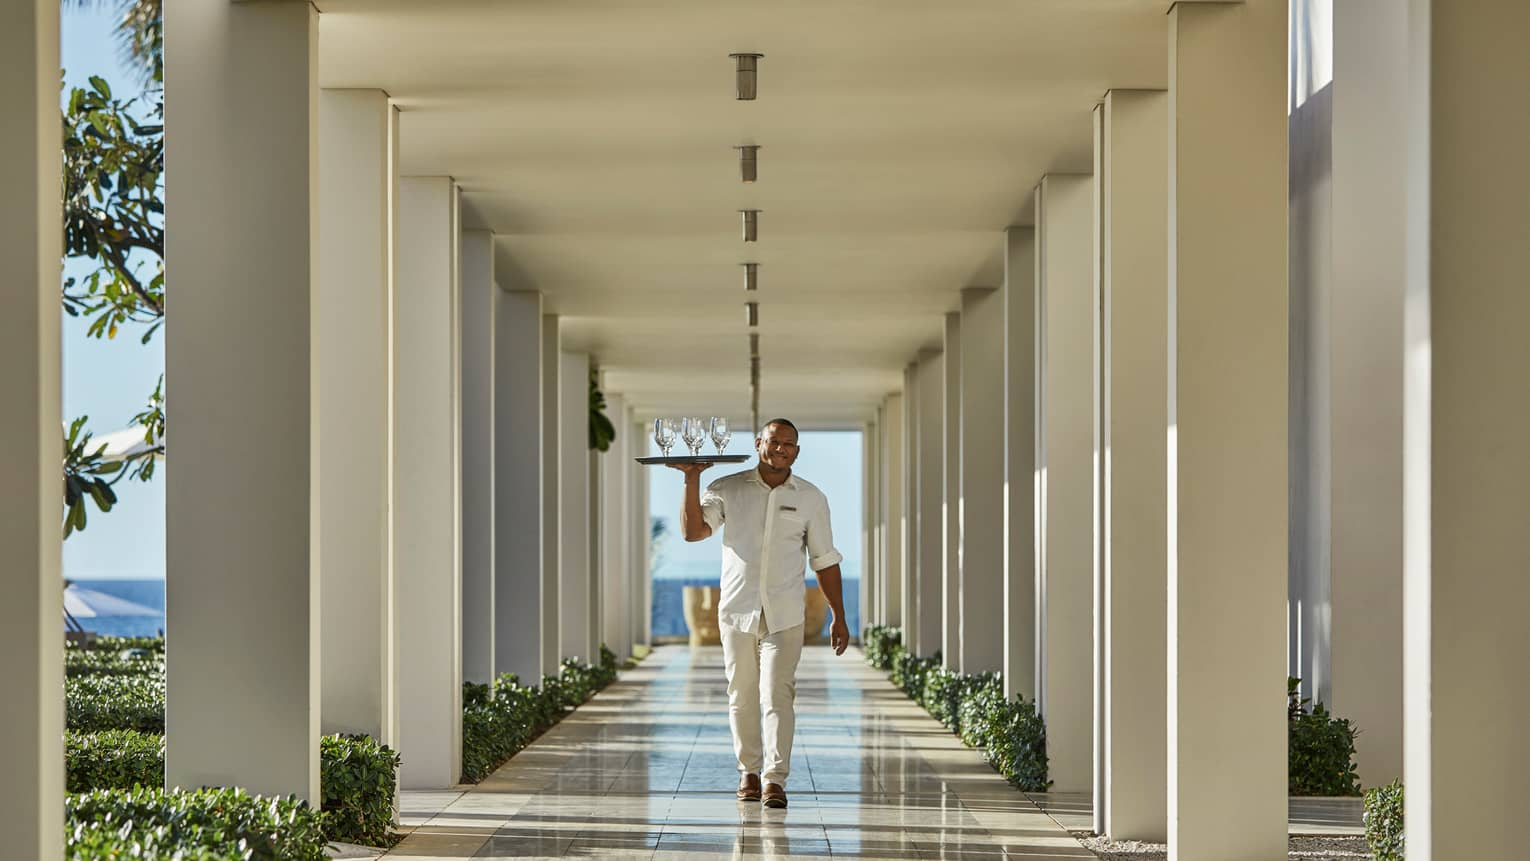 Server in white uniform carries tray of empty wine glasses through outdoor hallways with white posts, beams